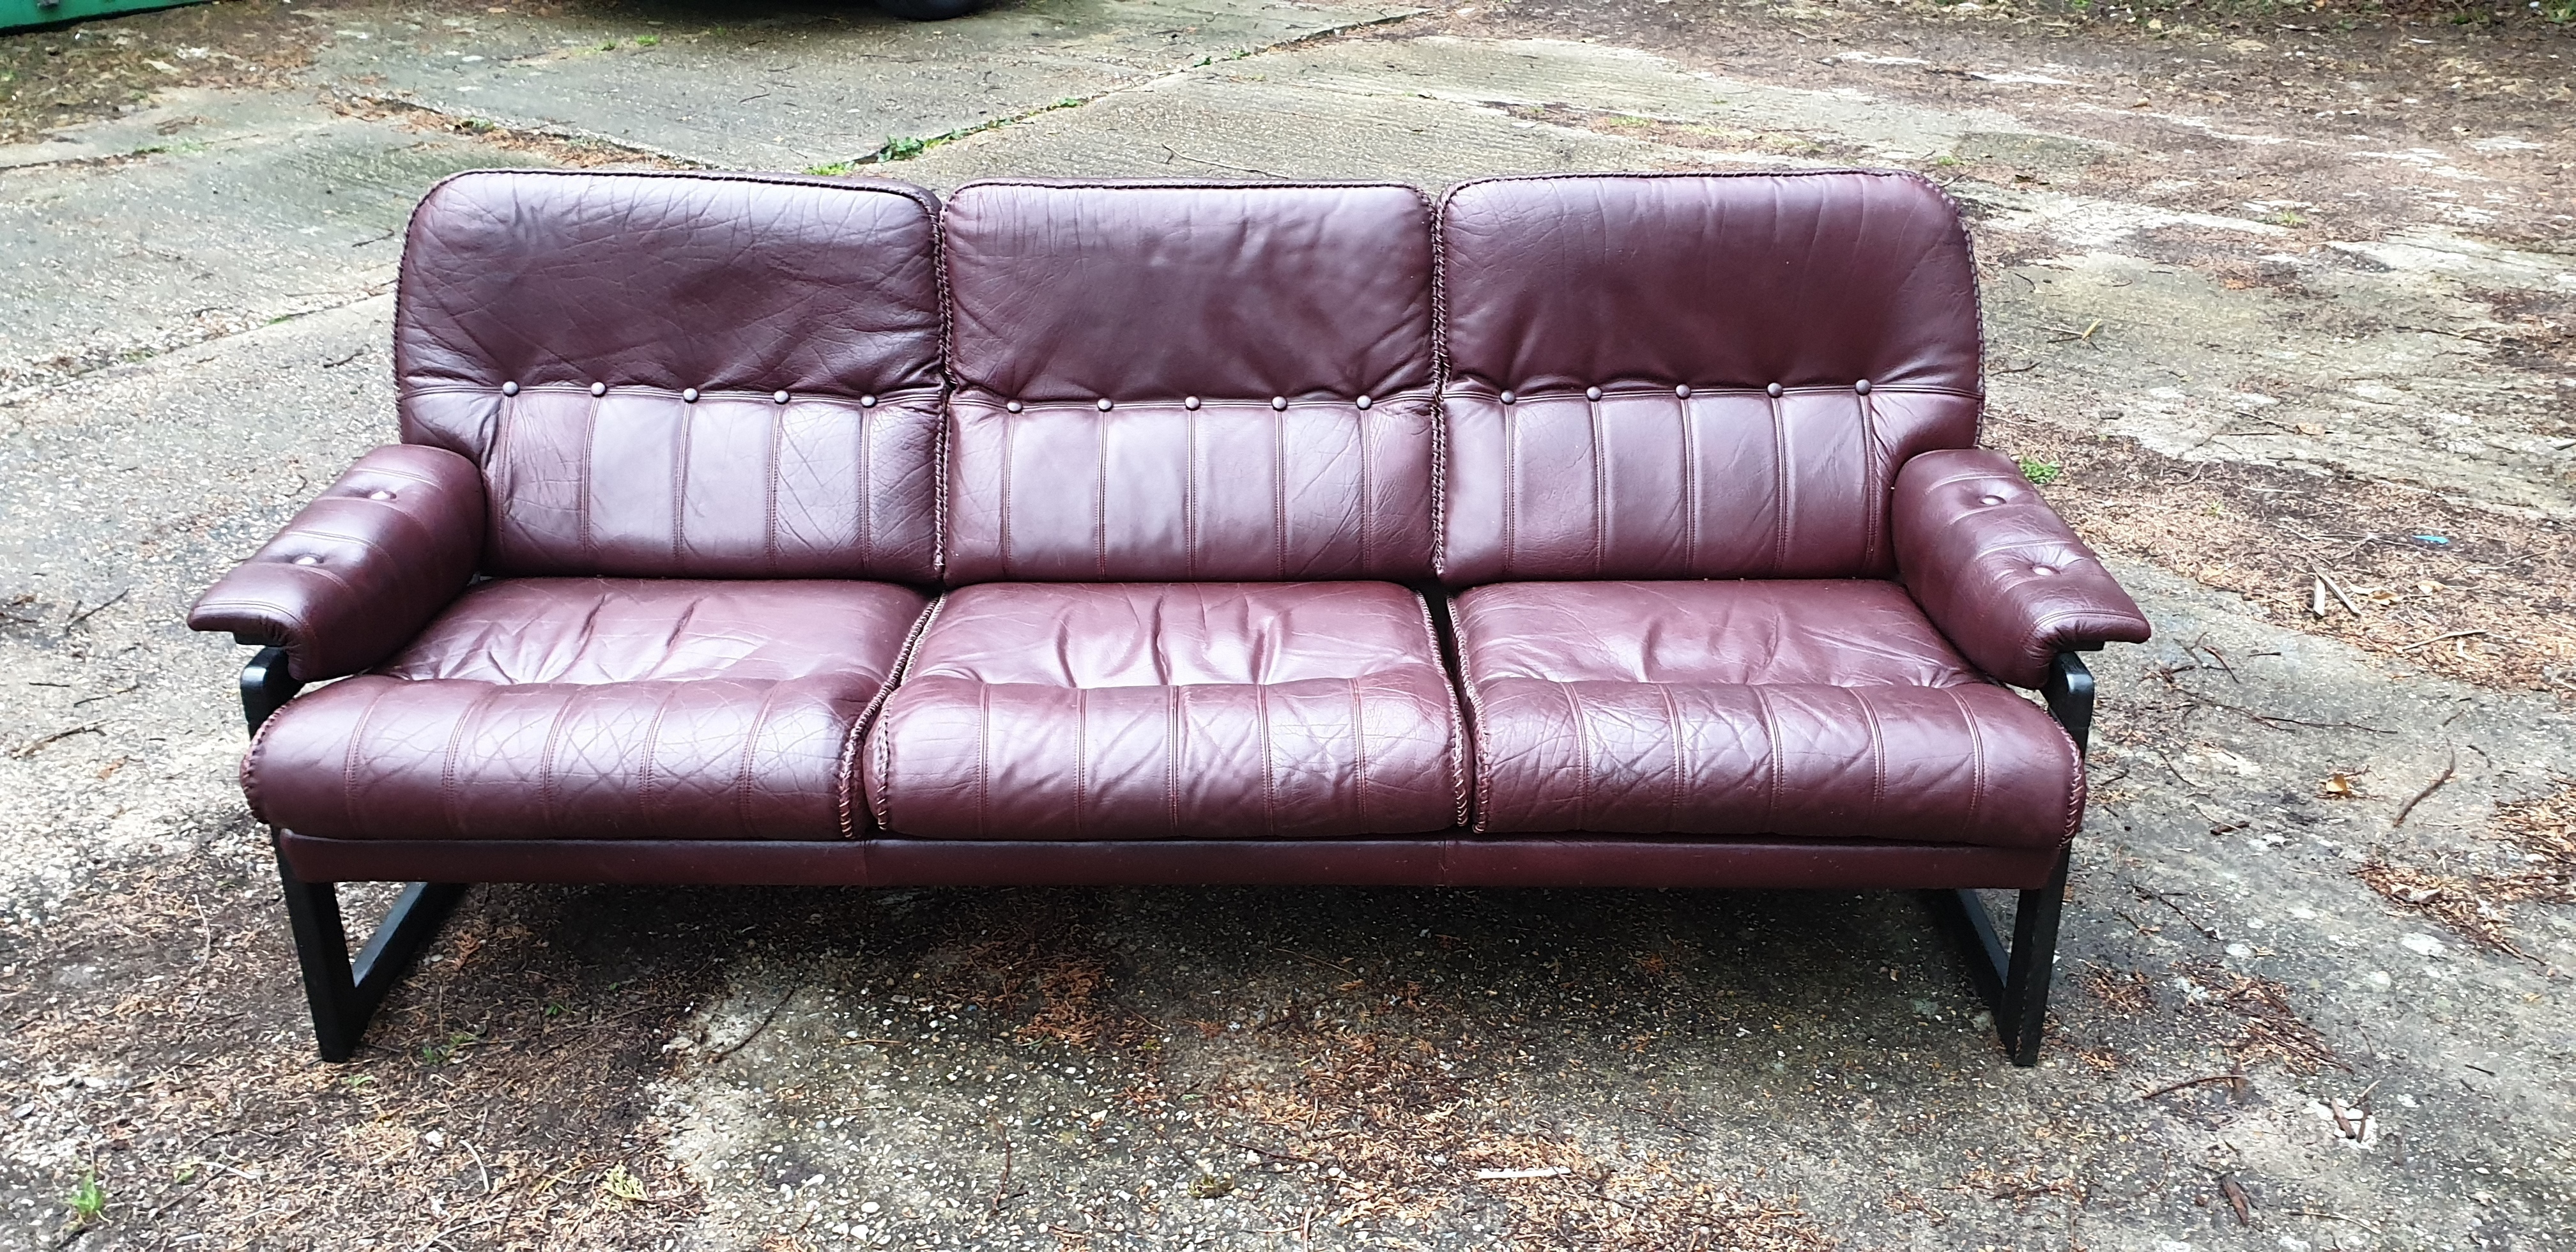 Scandinavian Leather Sofa With Wooden Frame